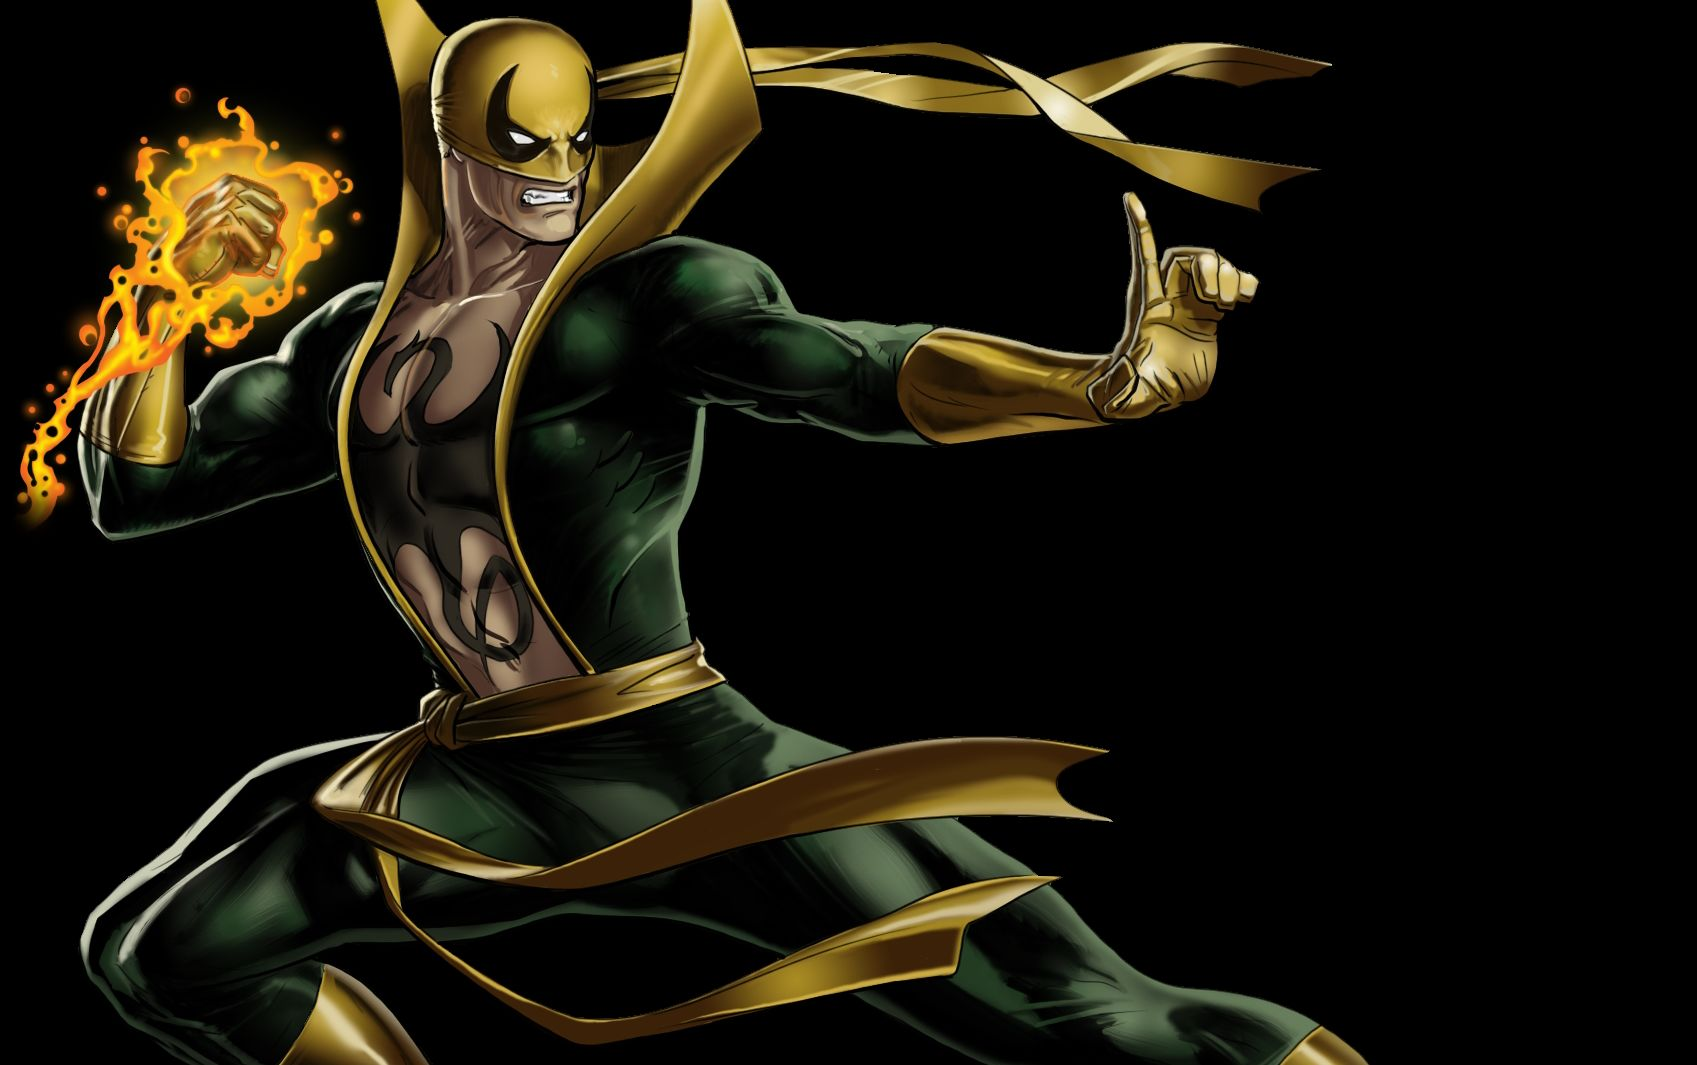 Danny Rand resurfaces 15 years after being presumed dead Now with the power of the Iron Fist he seeks to reclaim his past and fulfill his destiny Watch